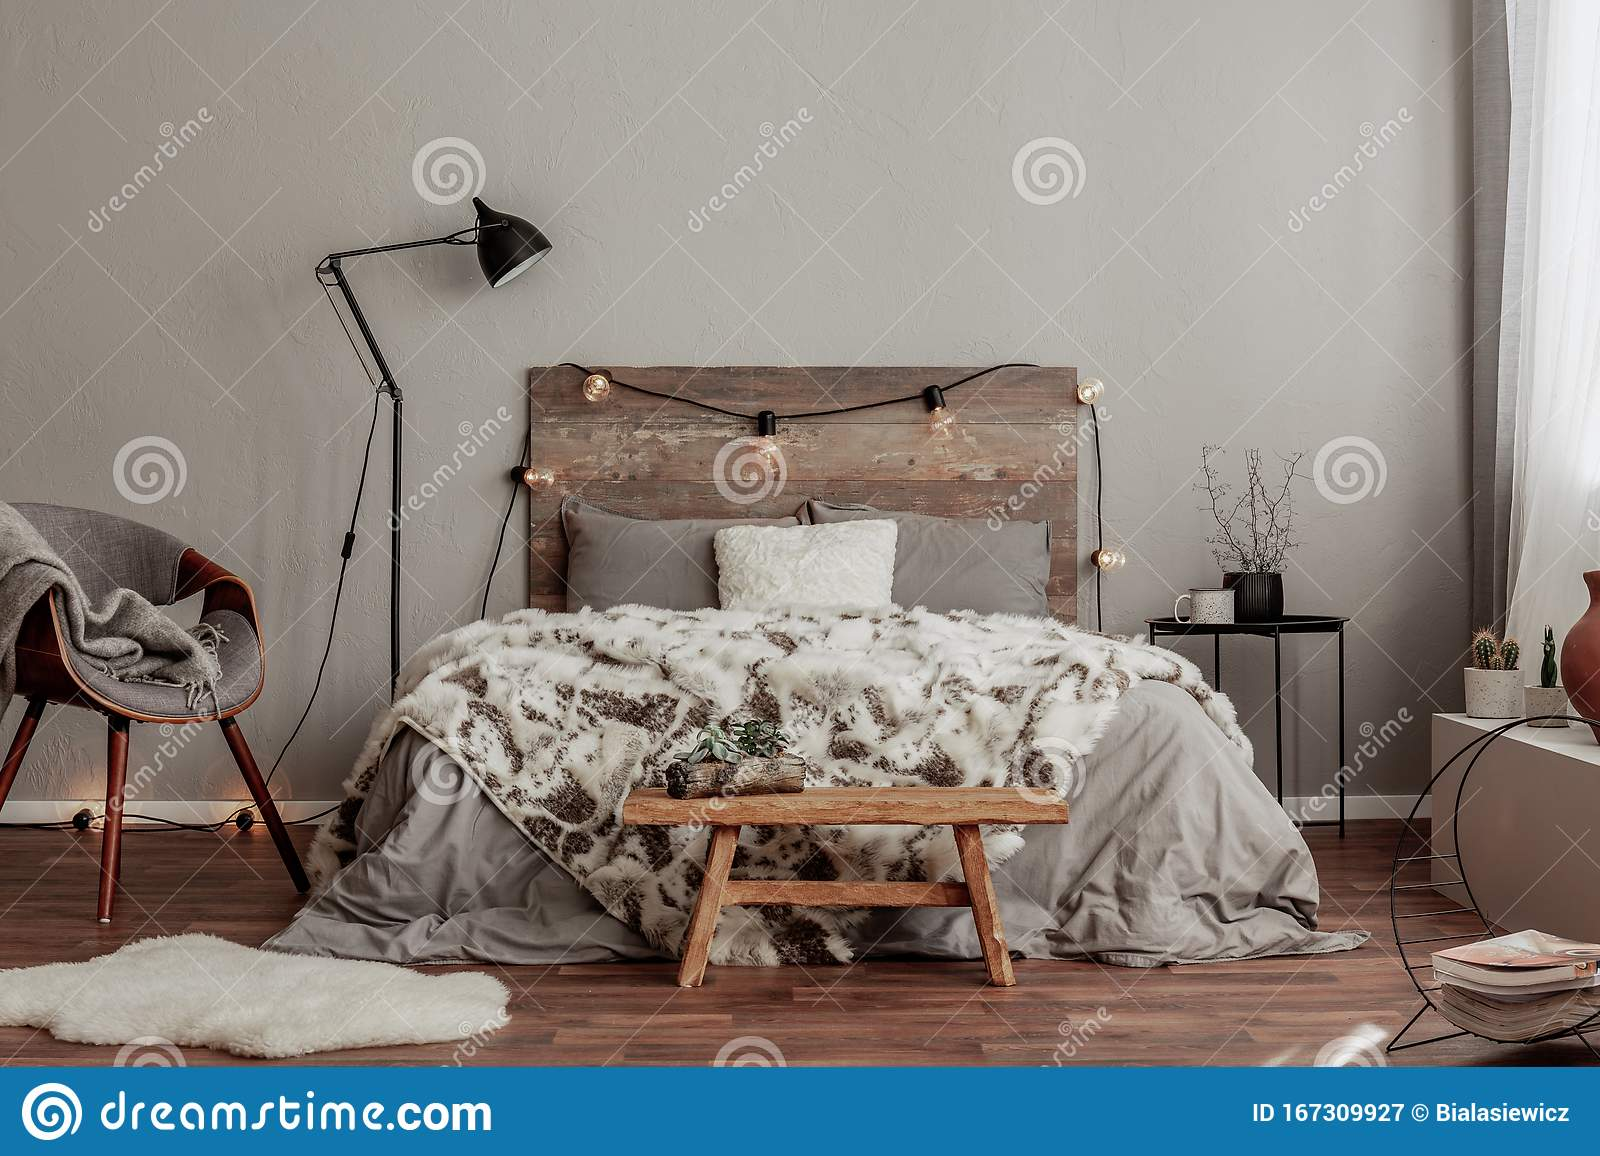 Warm Bedroom Interior With King Size Bed With Wooden Headboard With Light Fury Blanket Stock Image Image Of Decor Black 167309927